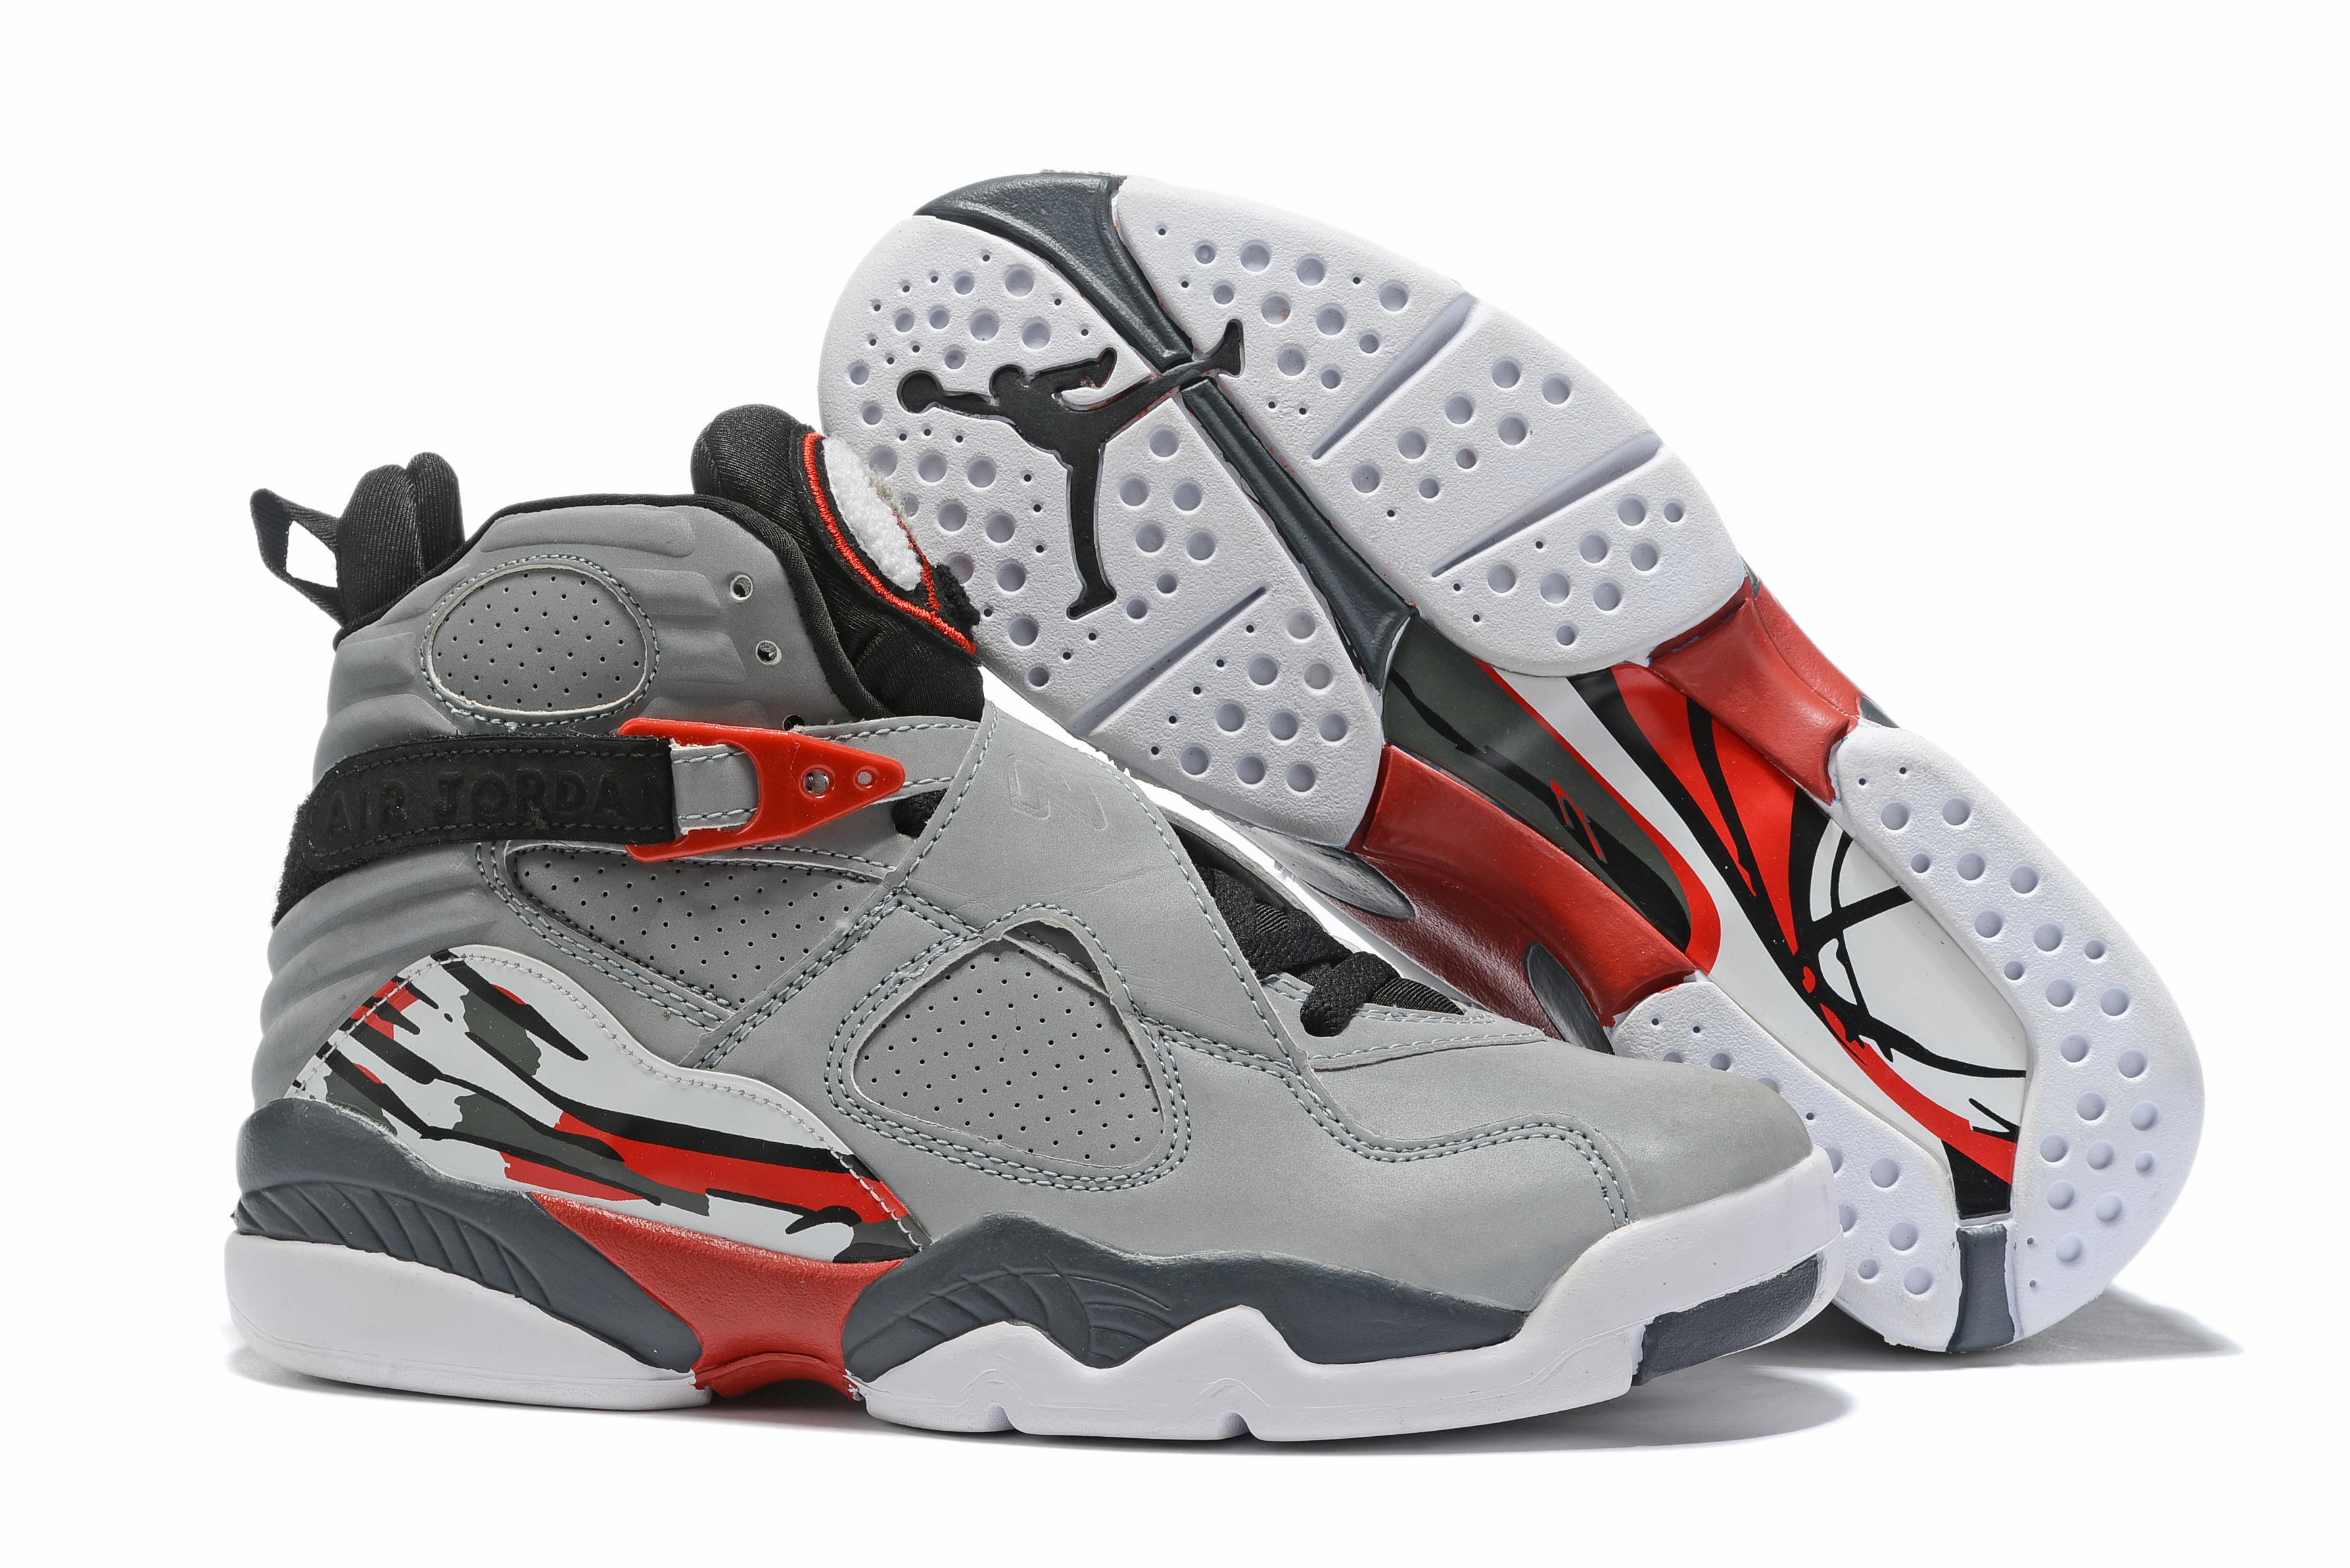 2019 Air Jordan 8 Grey Black Red Shoes